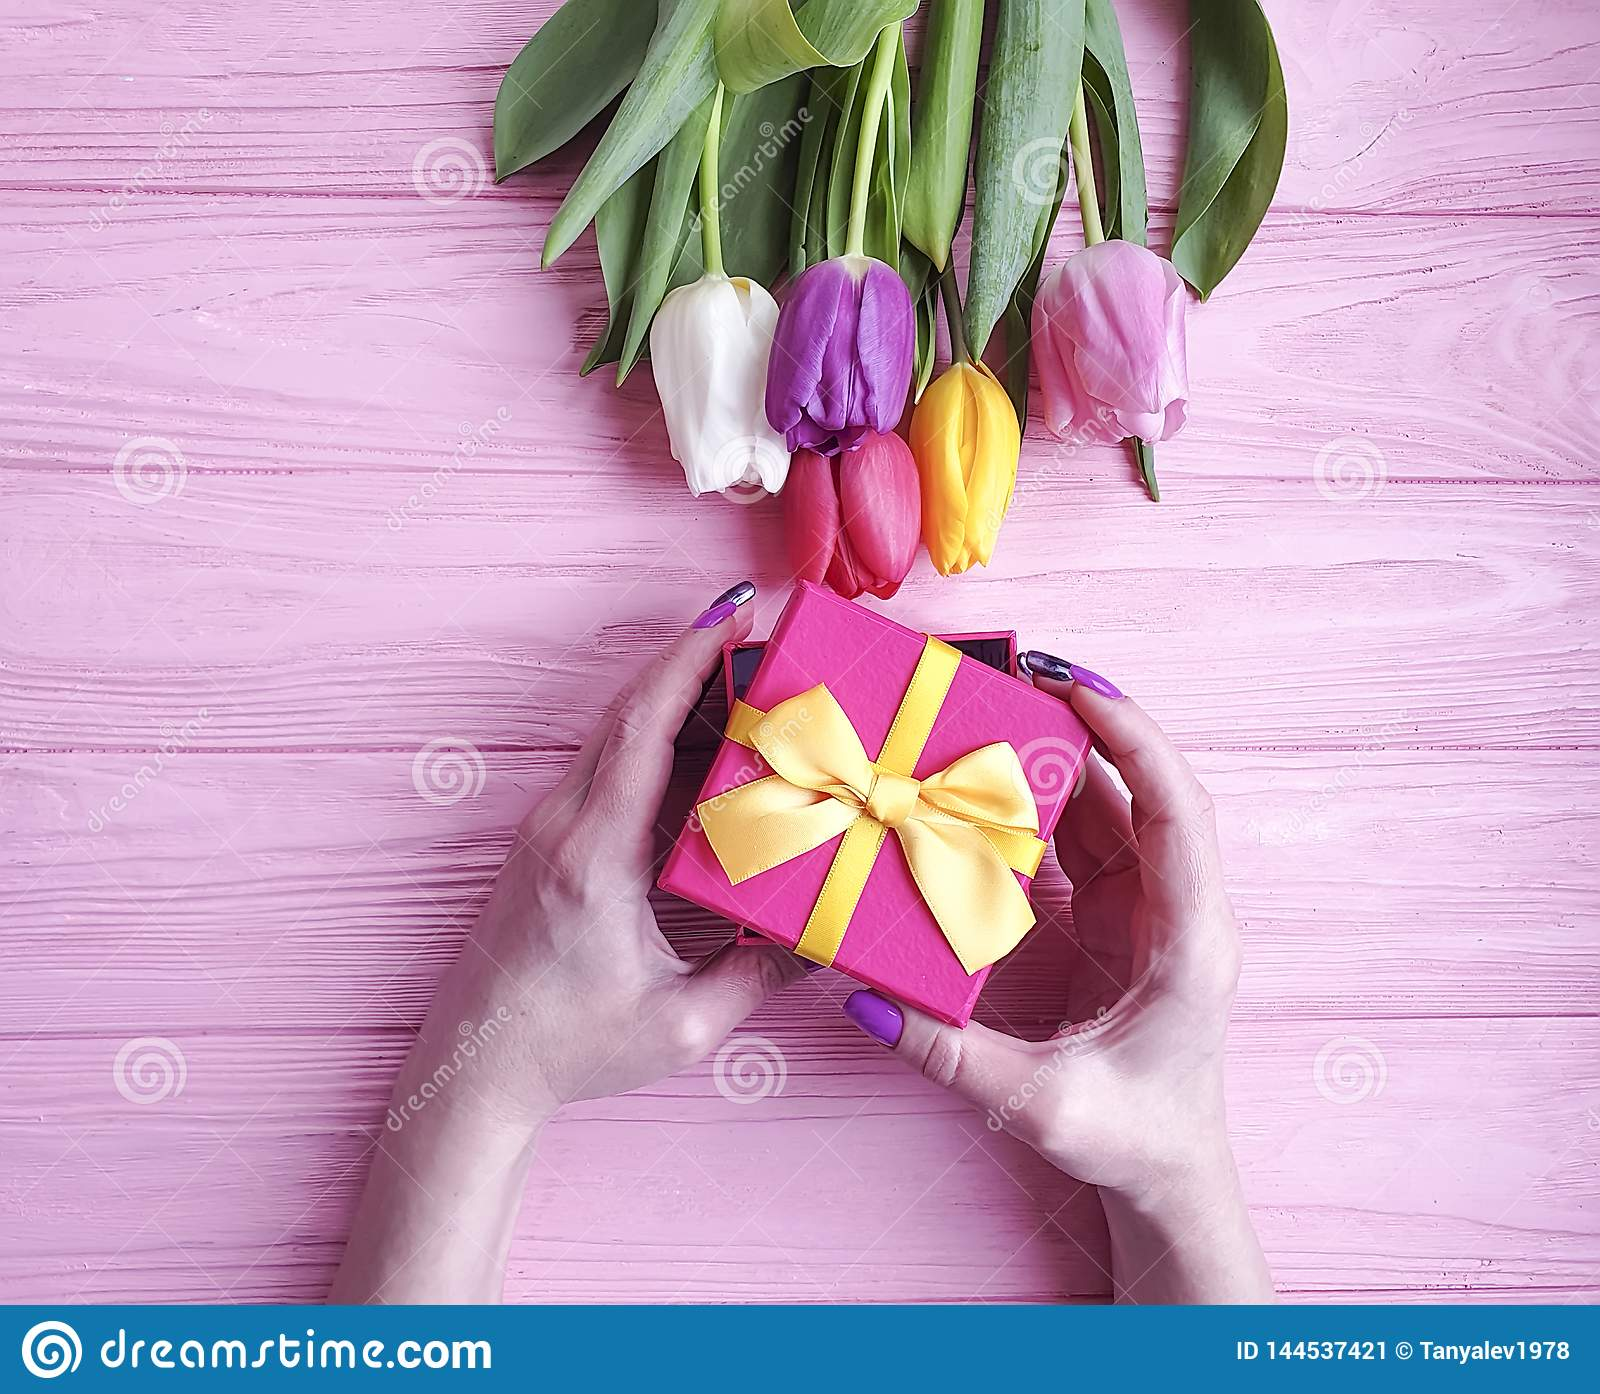 Female hands holding a gift box present birthday , romantic a bouquet of tulips on a wooden background